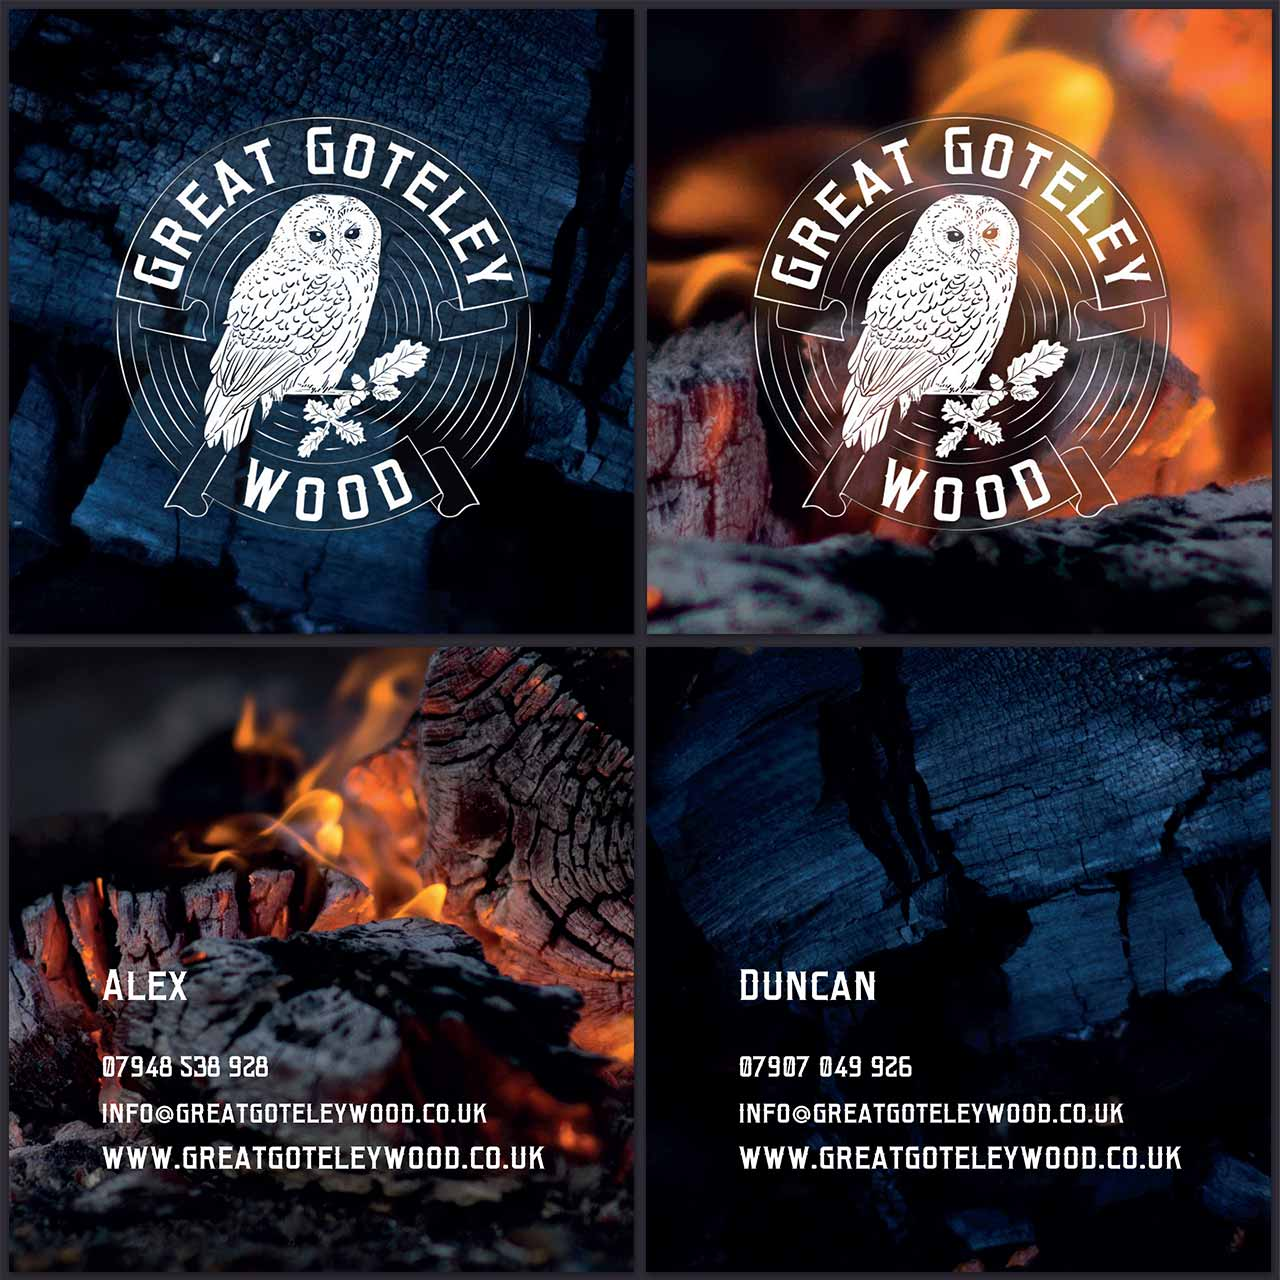 Business card design for GReat Goteley Wood